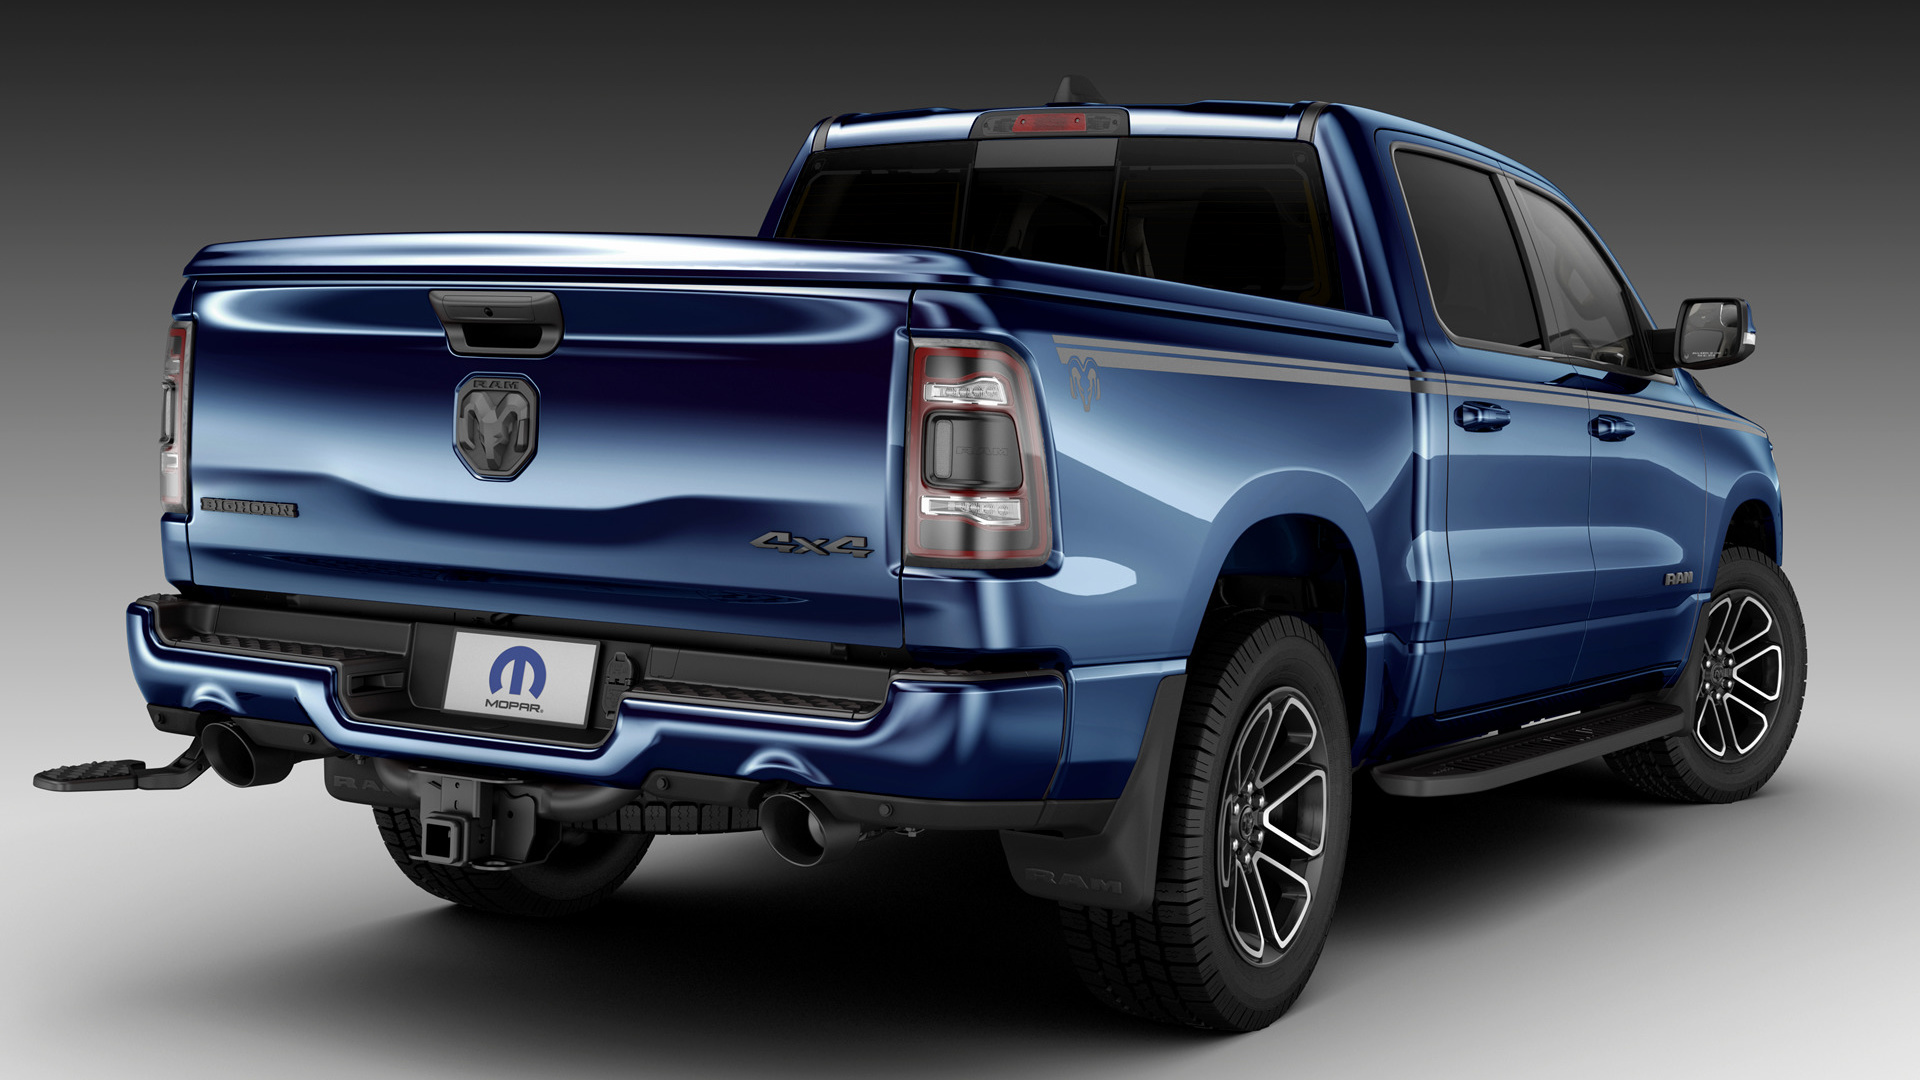 2019 ram 1500 big horn crew cab hd wallpaper | background image